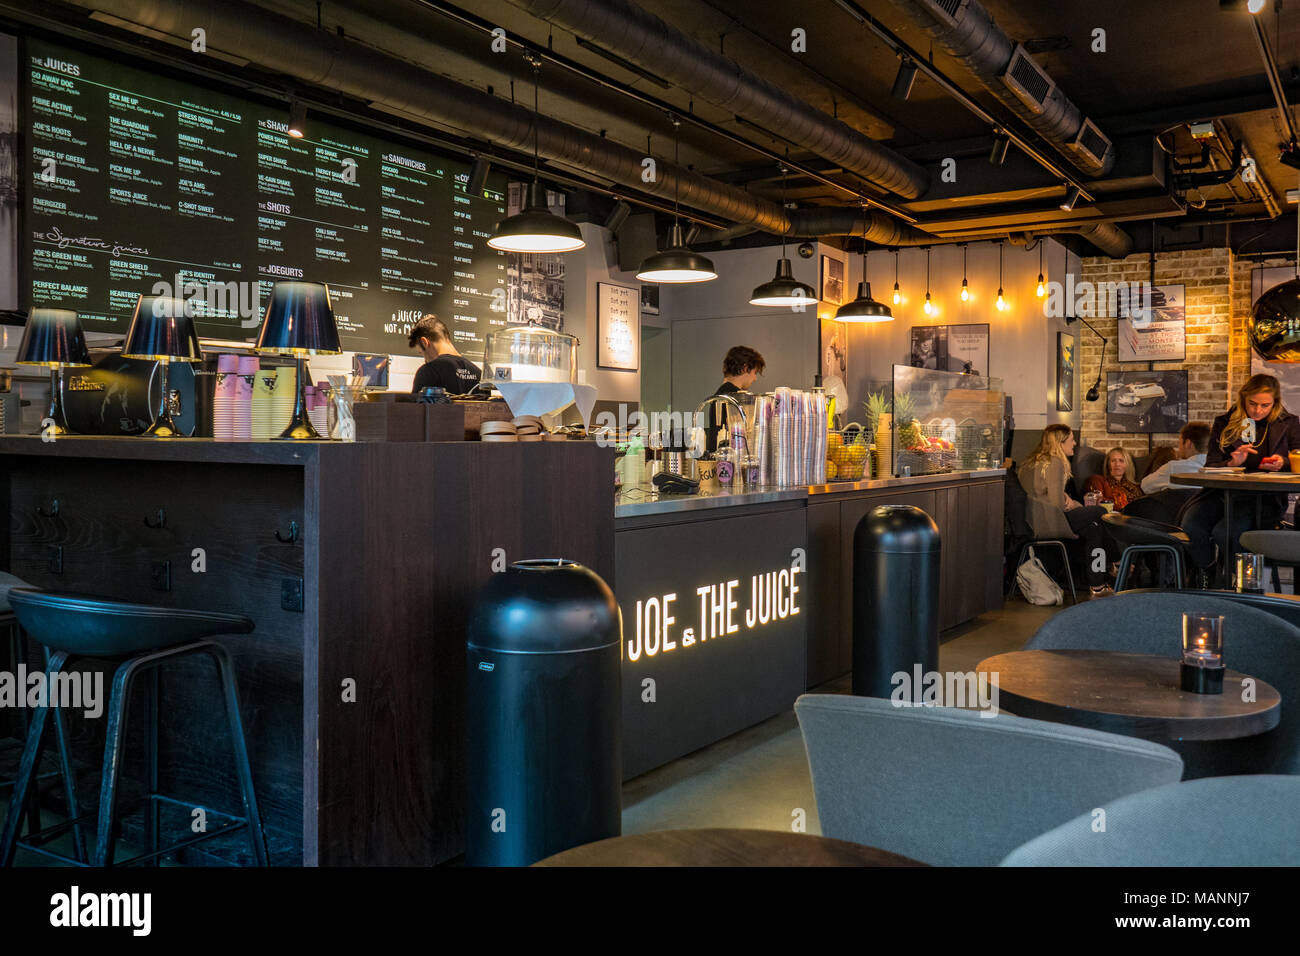 Joe and the Juice Cafe Restaurant in the City of London, London's financial district. Joe and the Juice is a chain originally set up in Denmark. - Stock Image